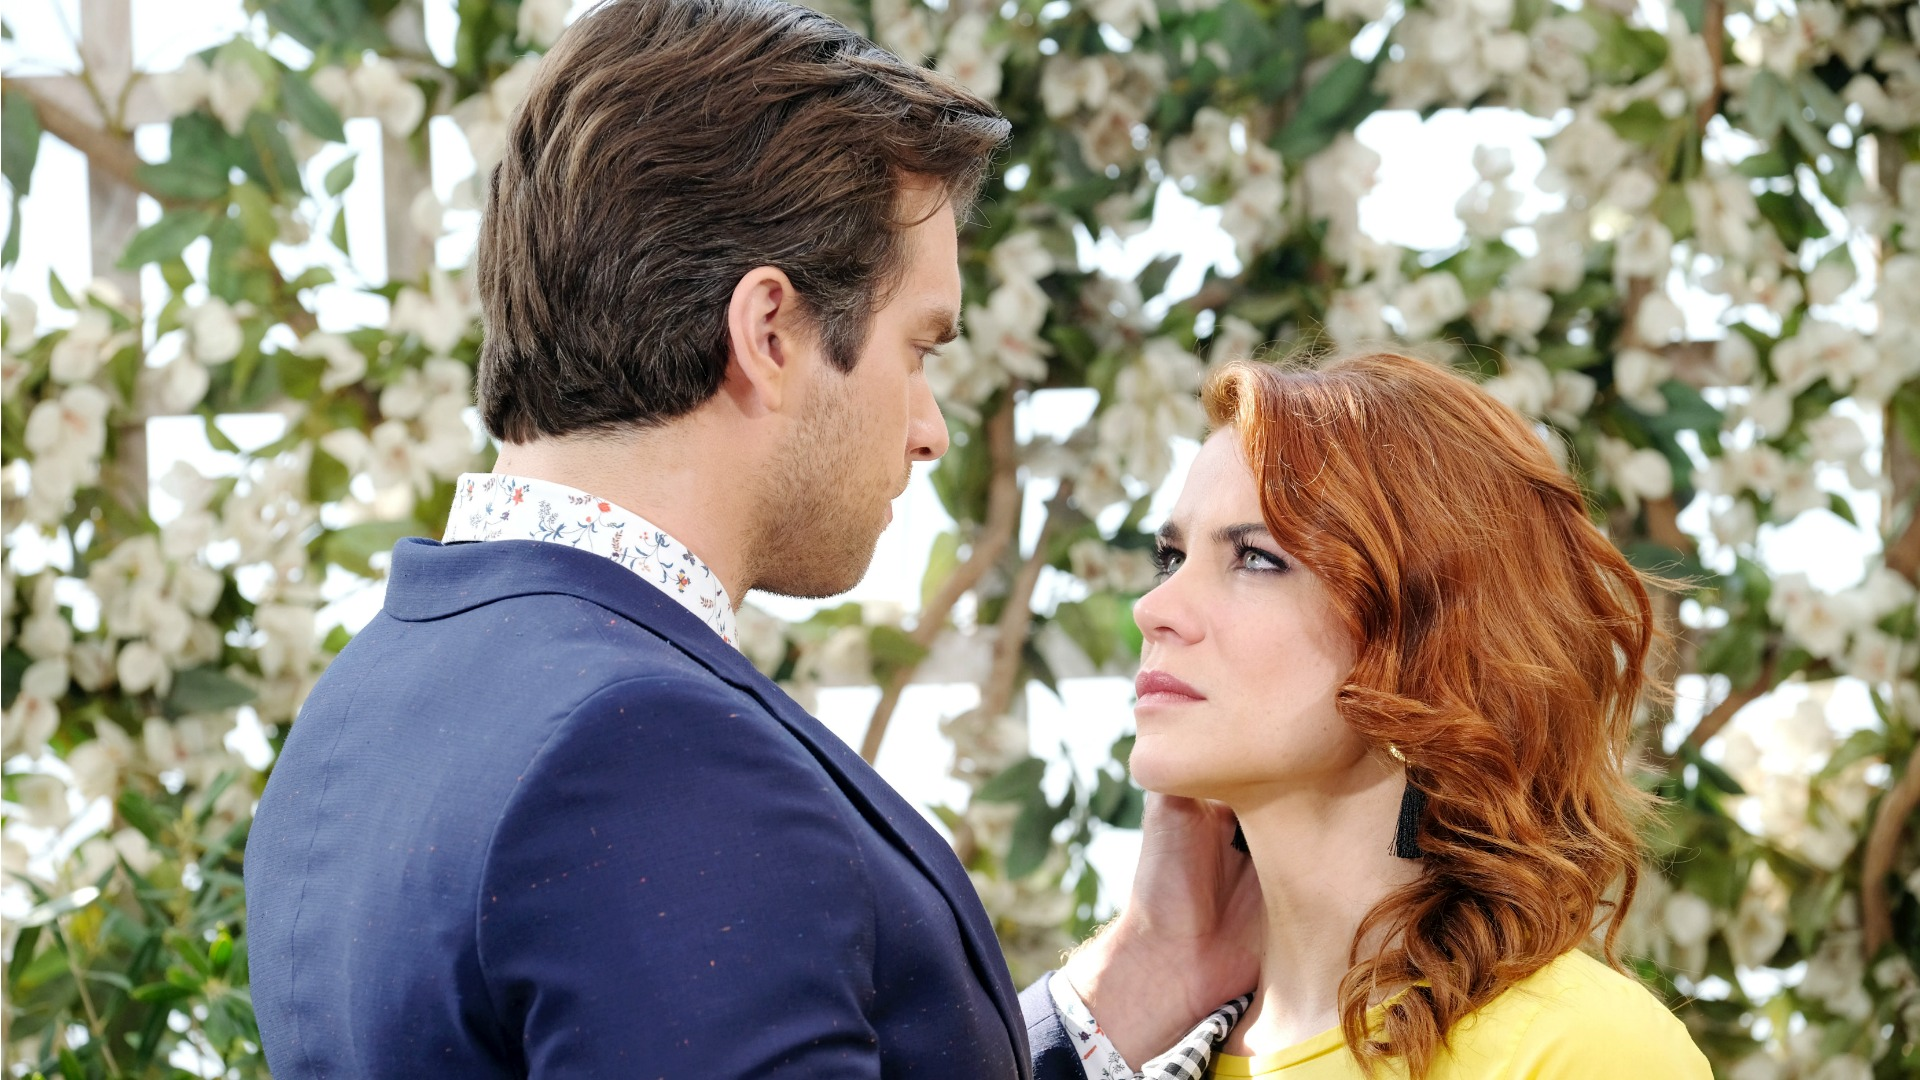 Thomas is blindsided and heartbroken by Sally when she makes an abrupt change in their plans.